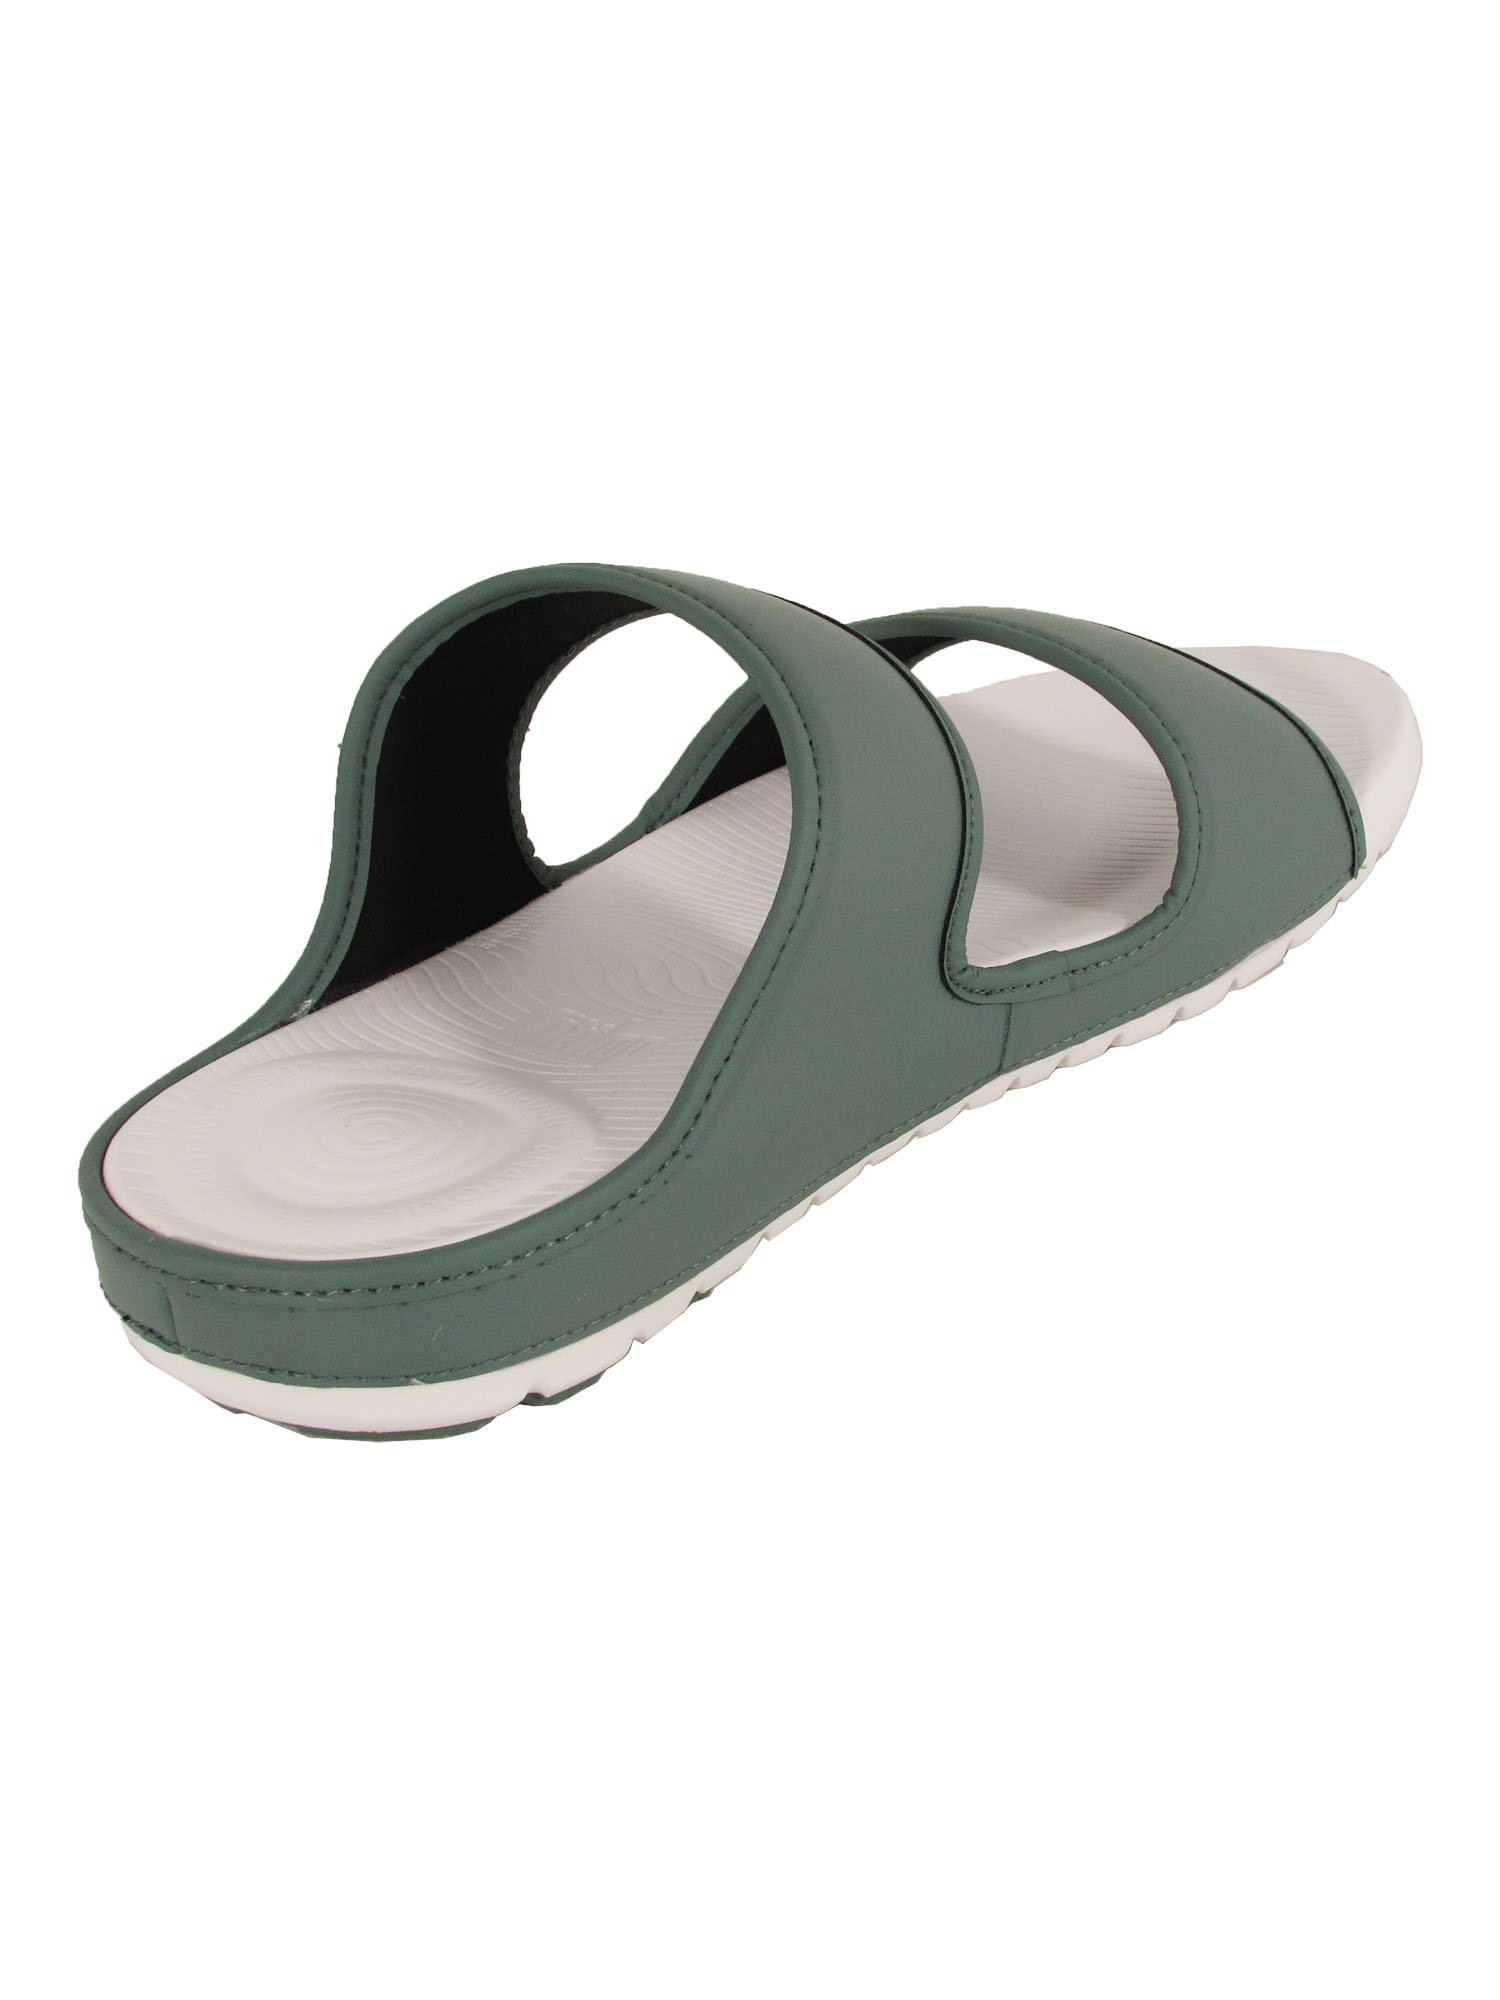 be71afa260957 Details about Fitflop Mens Lido Double Slide Sandals In Neoprene